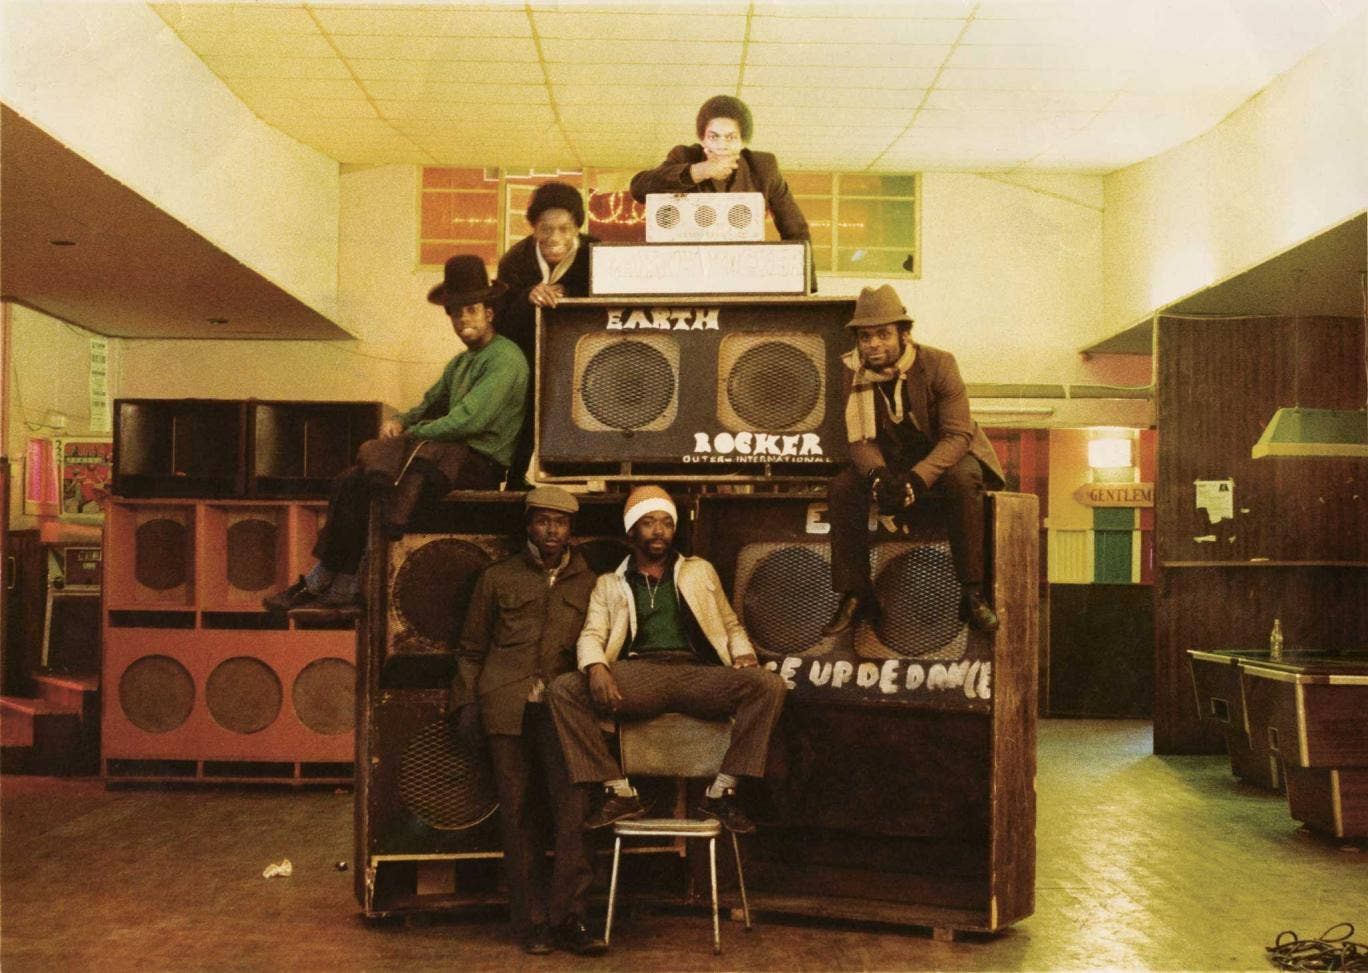 Sound clash: the Earth Rocker sound system crew at work in Venn Street in the late 1970s